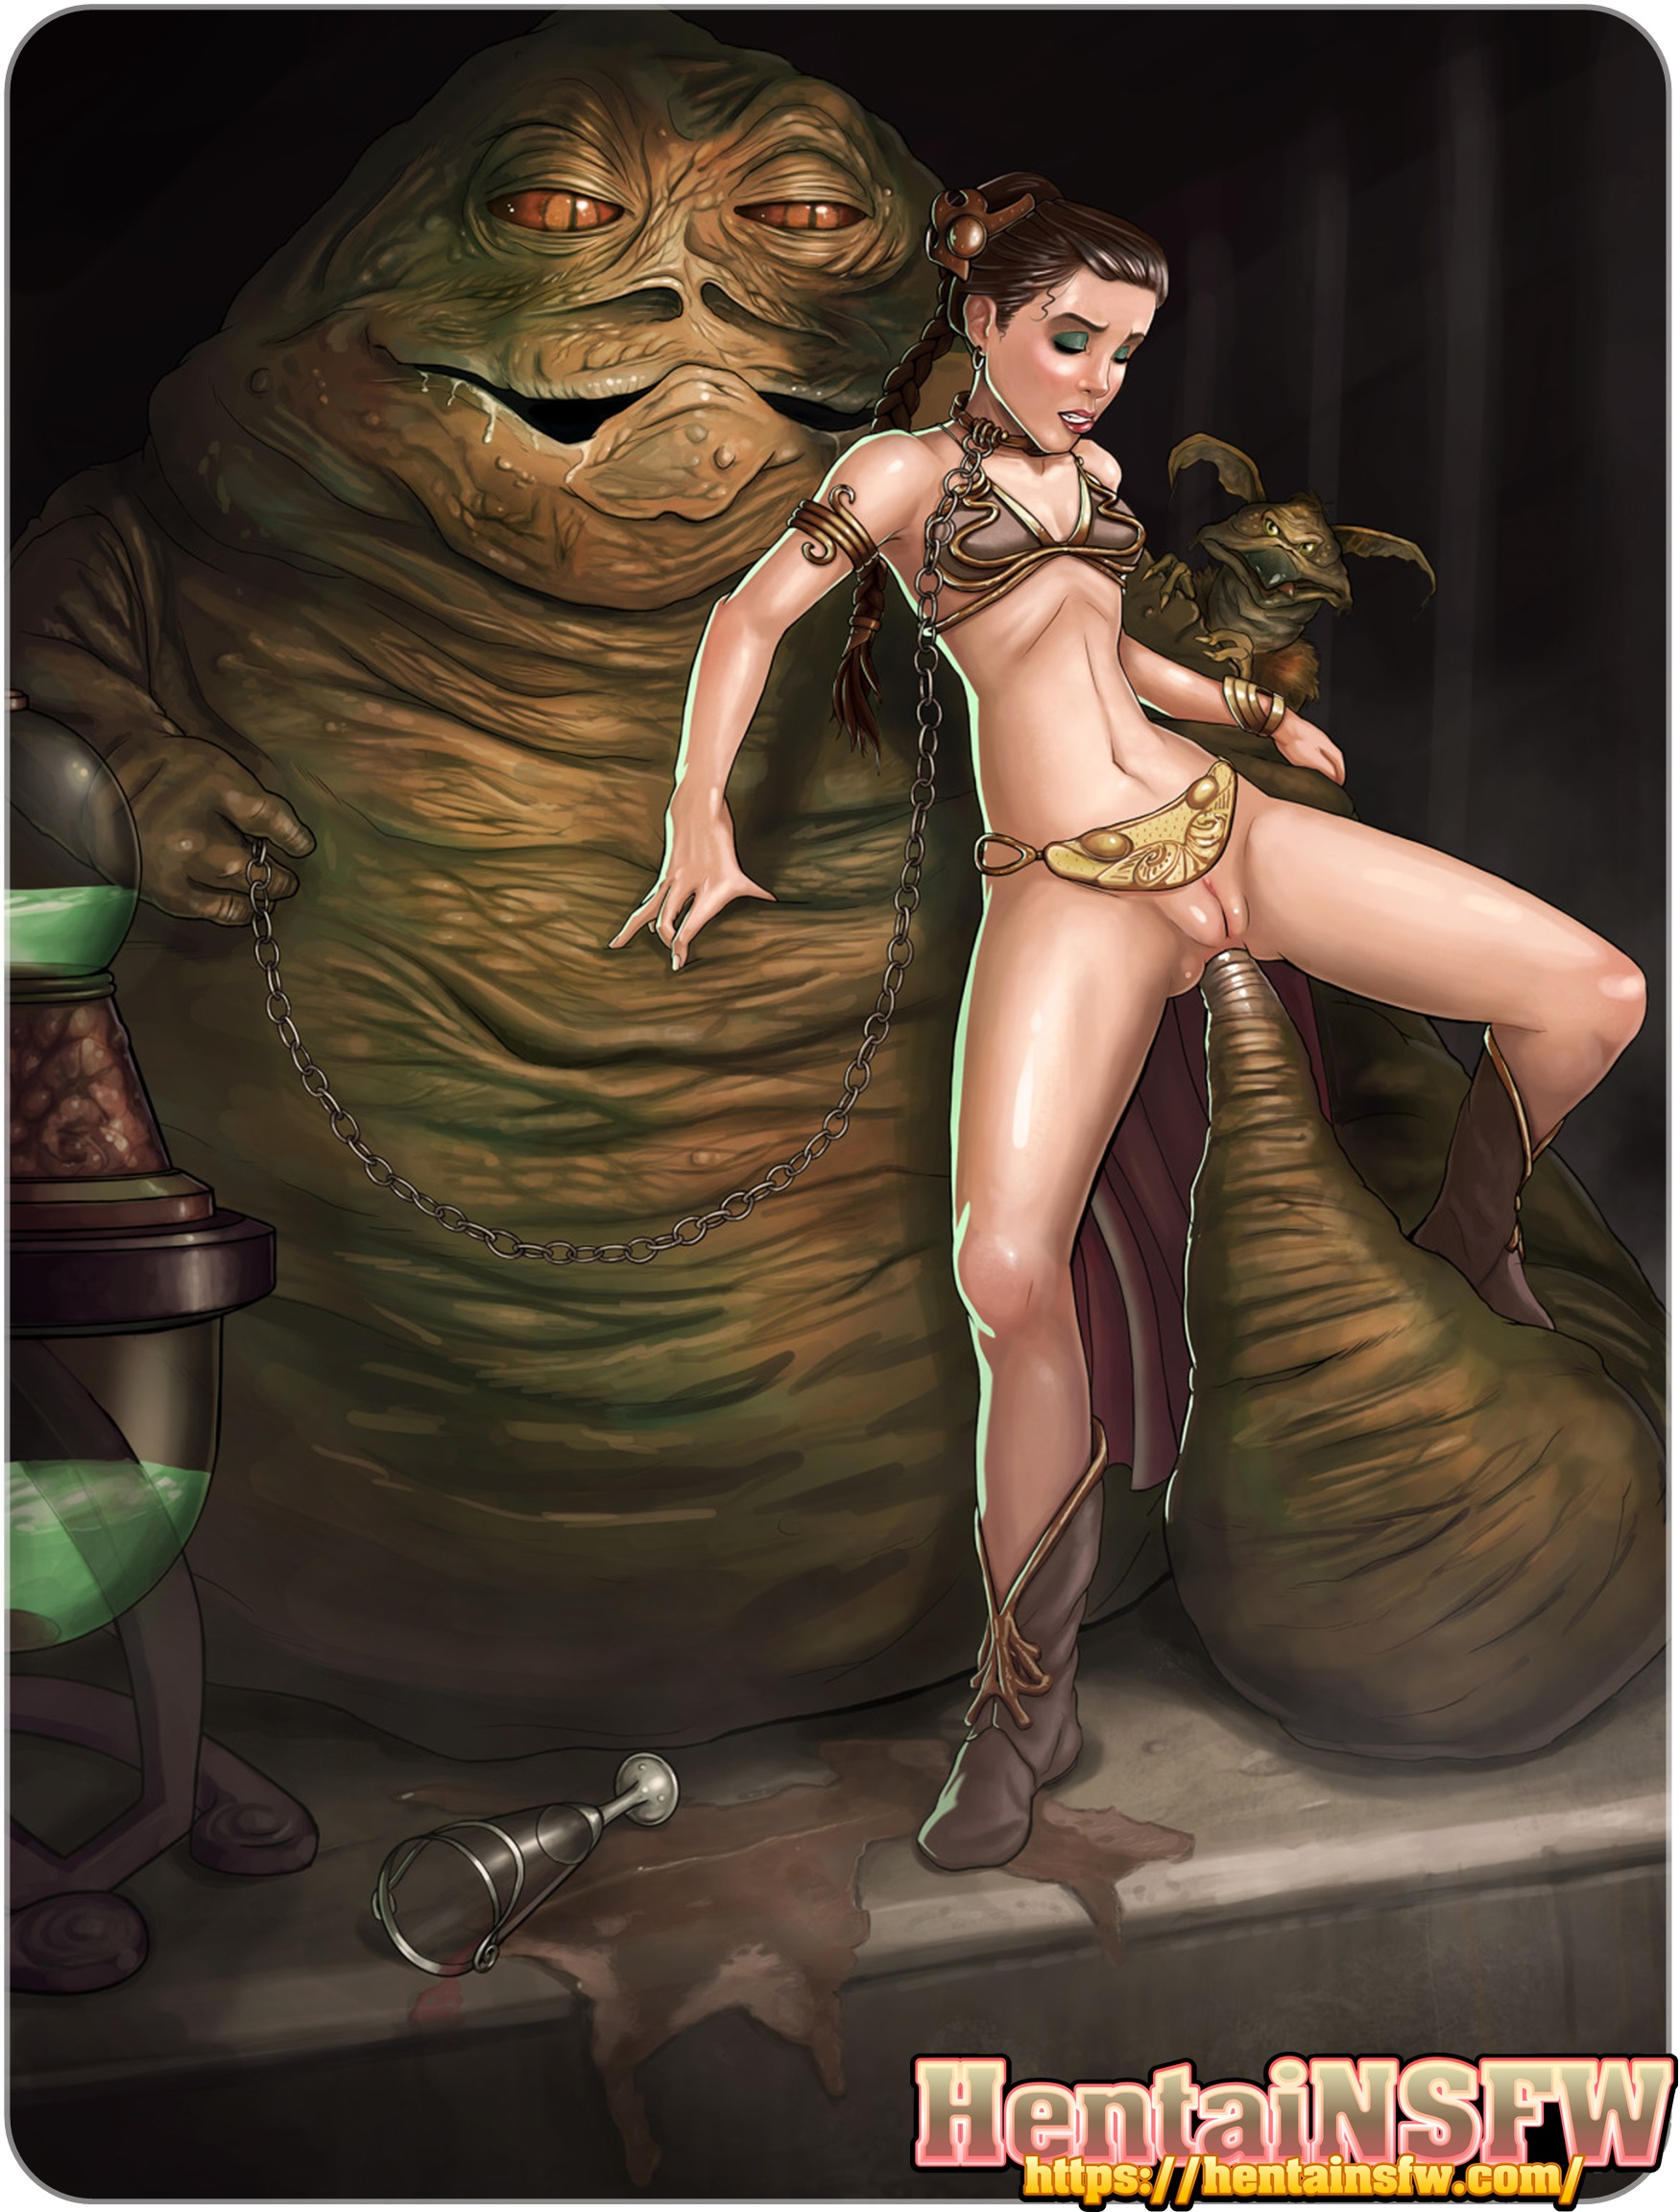 Nsfw Uncensored Sci Fi Star Wars Hentai Porn Art Of Jabba The Hut Fucking Princess Leia Up The Ass In Xxx Parody Hentai Nsfw